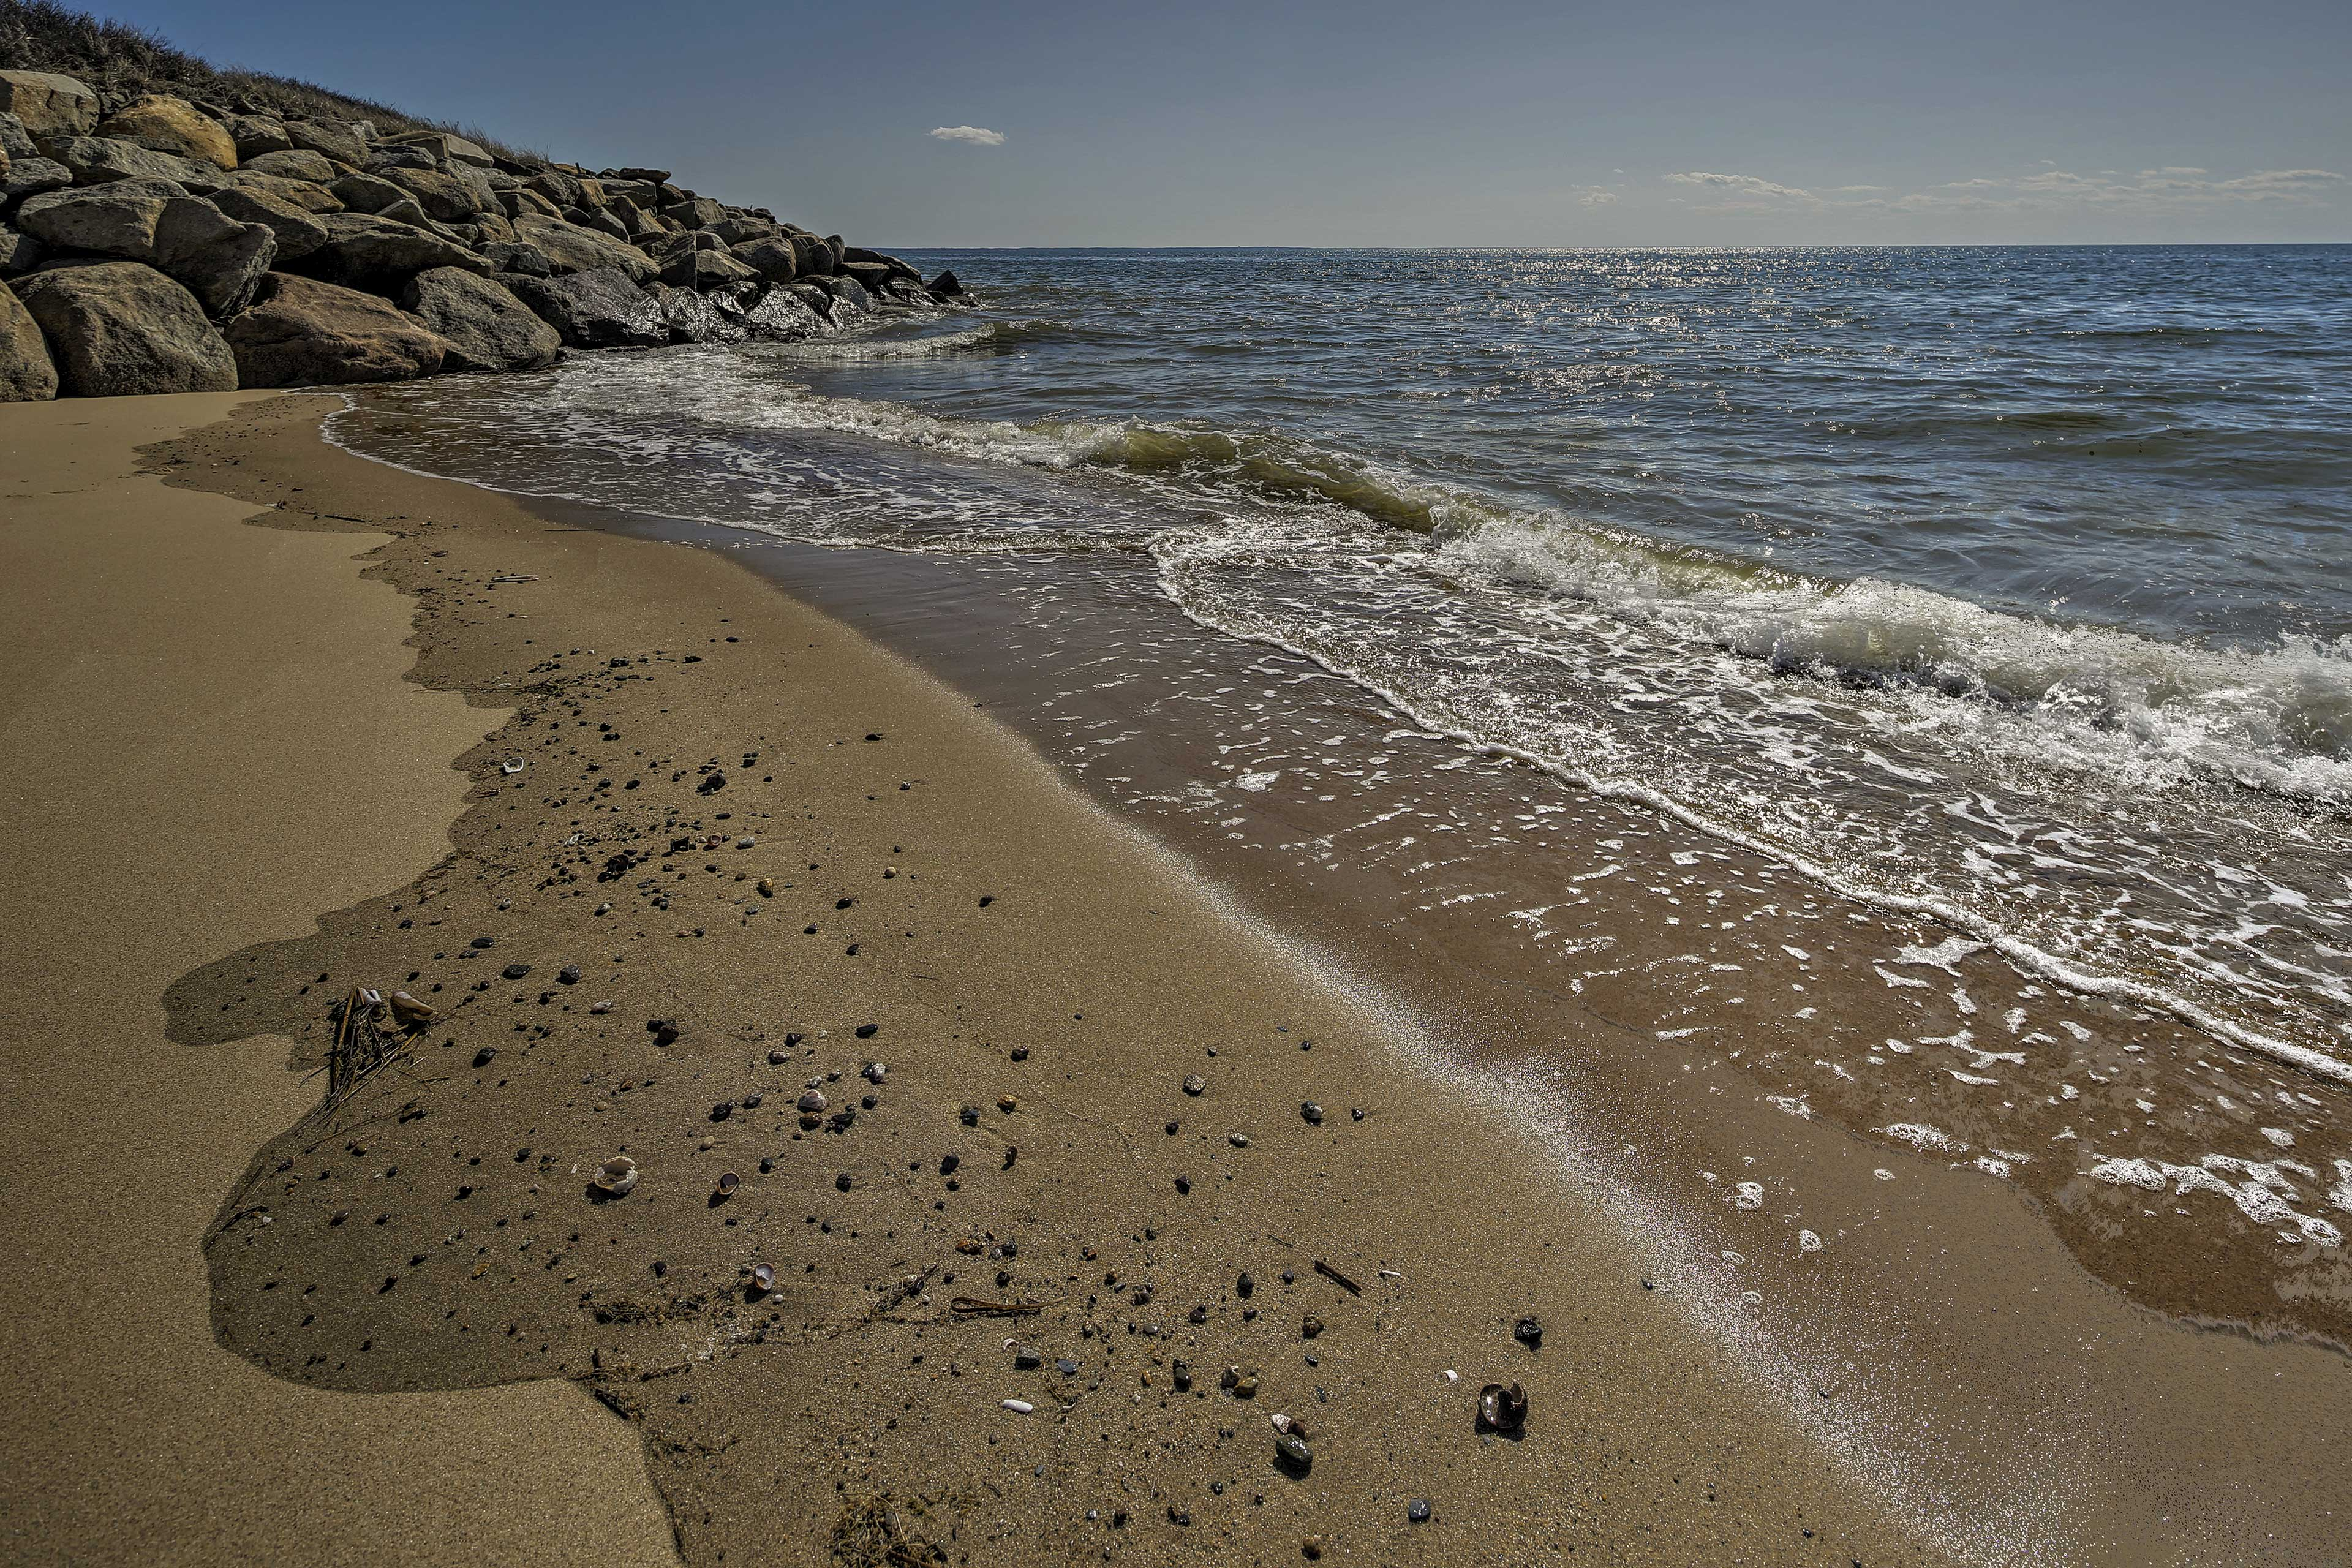 Experience all the splendors of Cape Cod Bay from 'Seawatch!'